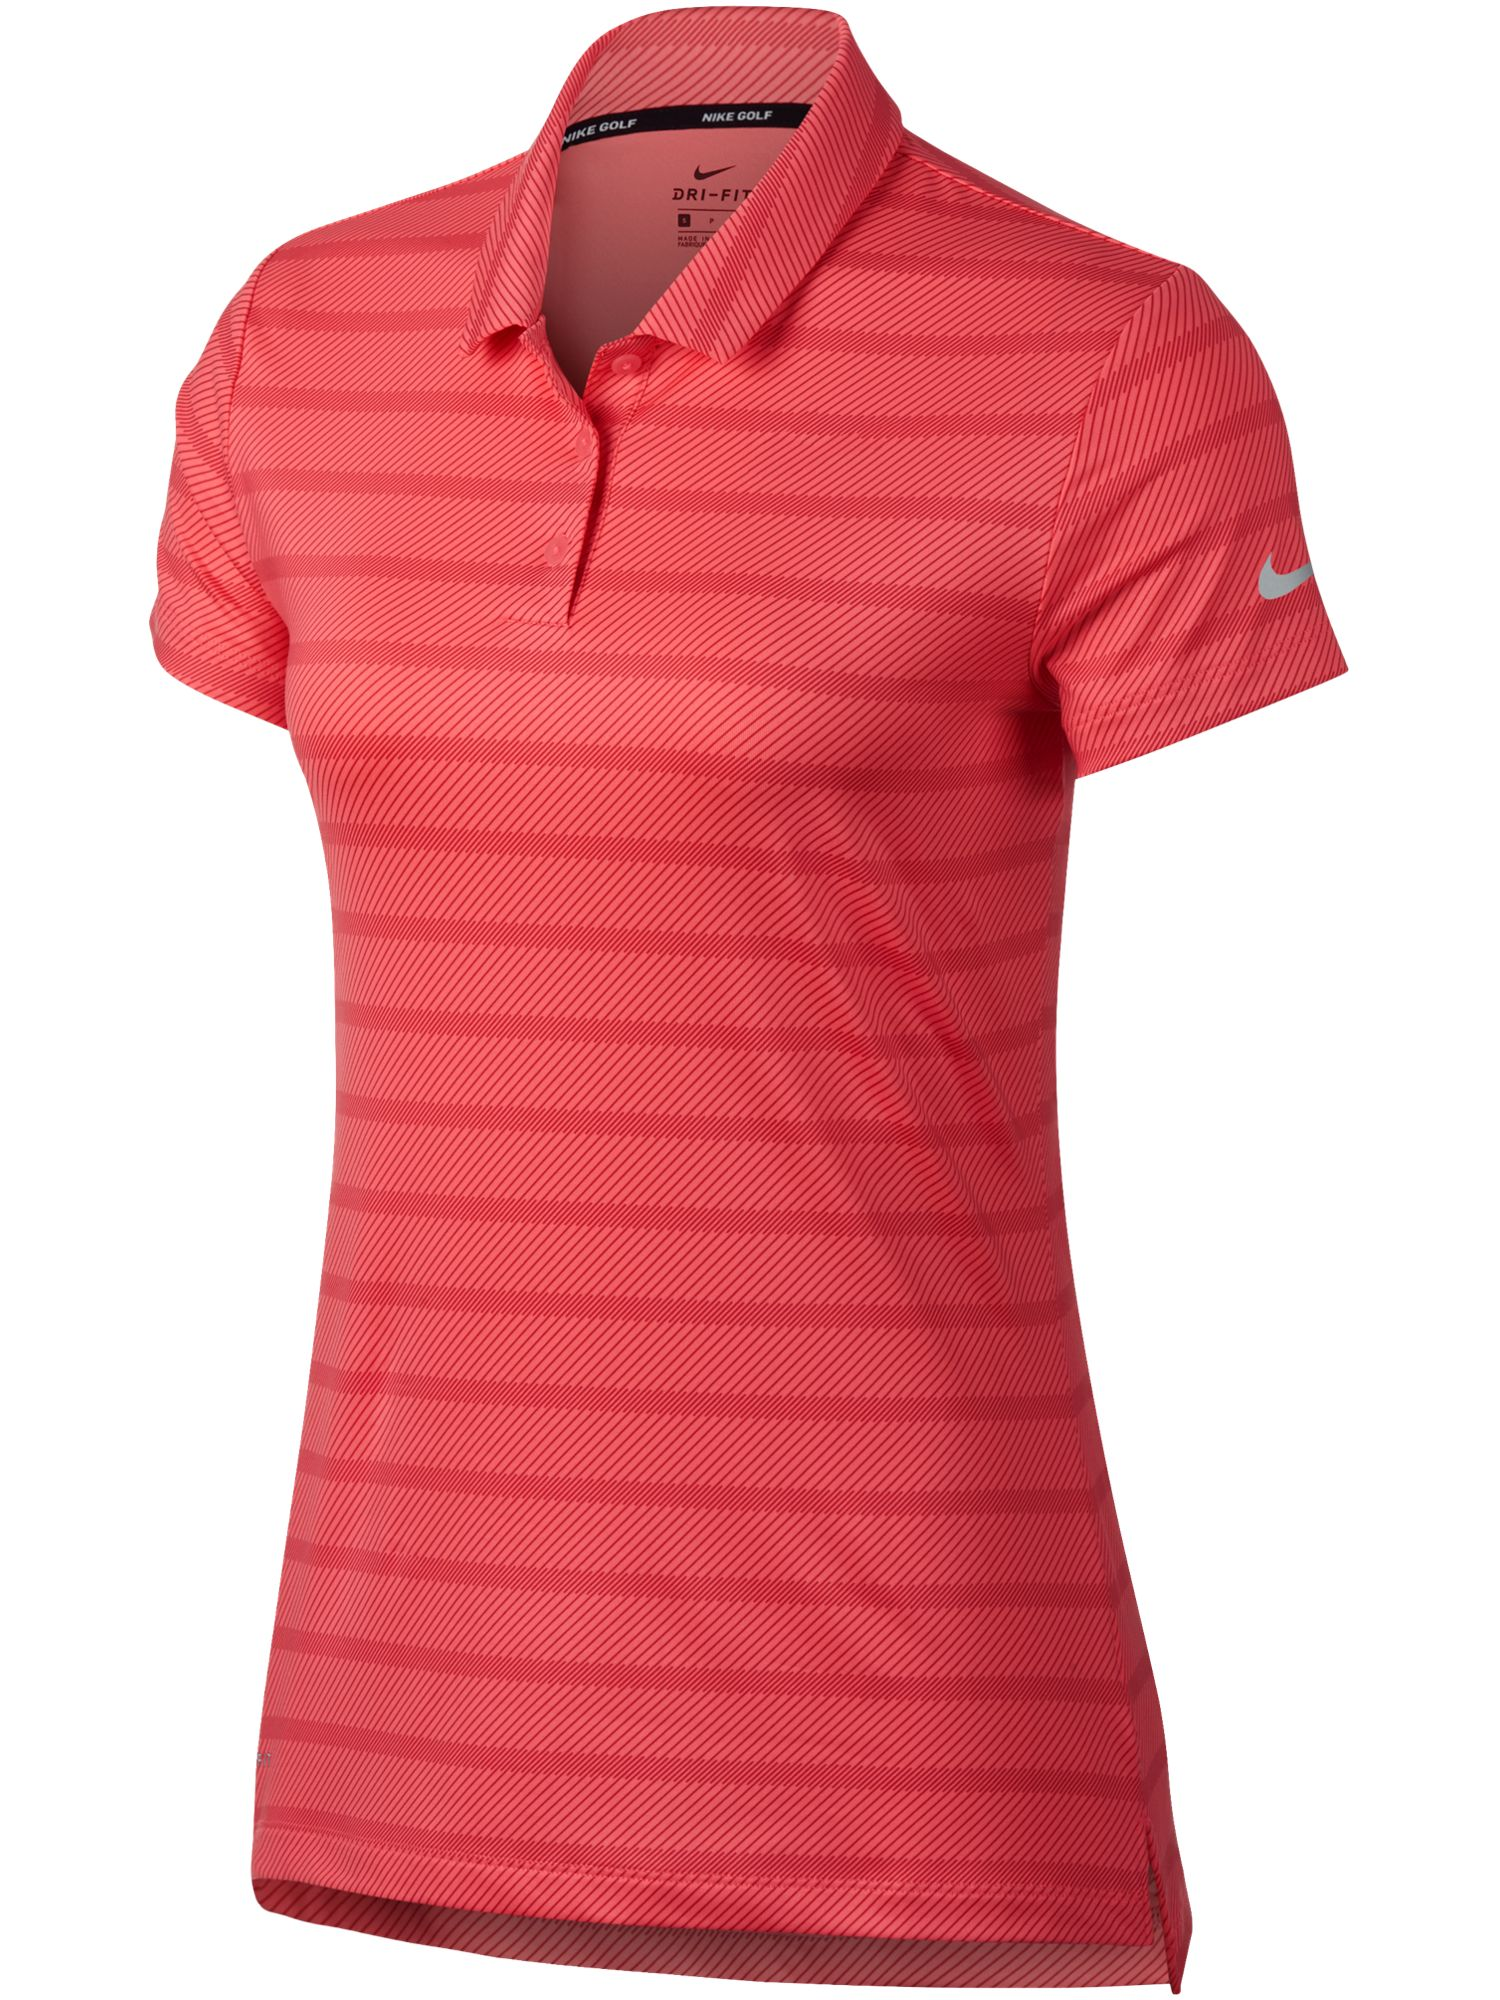 Nike Golf Dry Golf Stripe Polo, Hot Pink